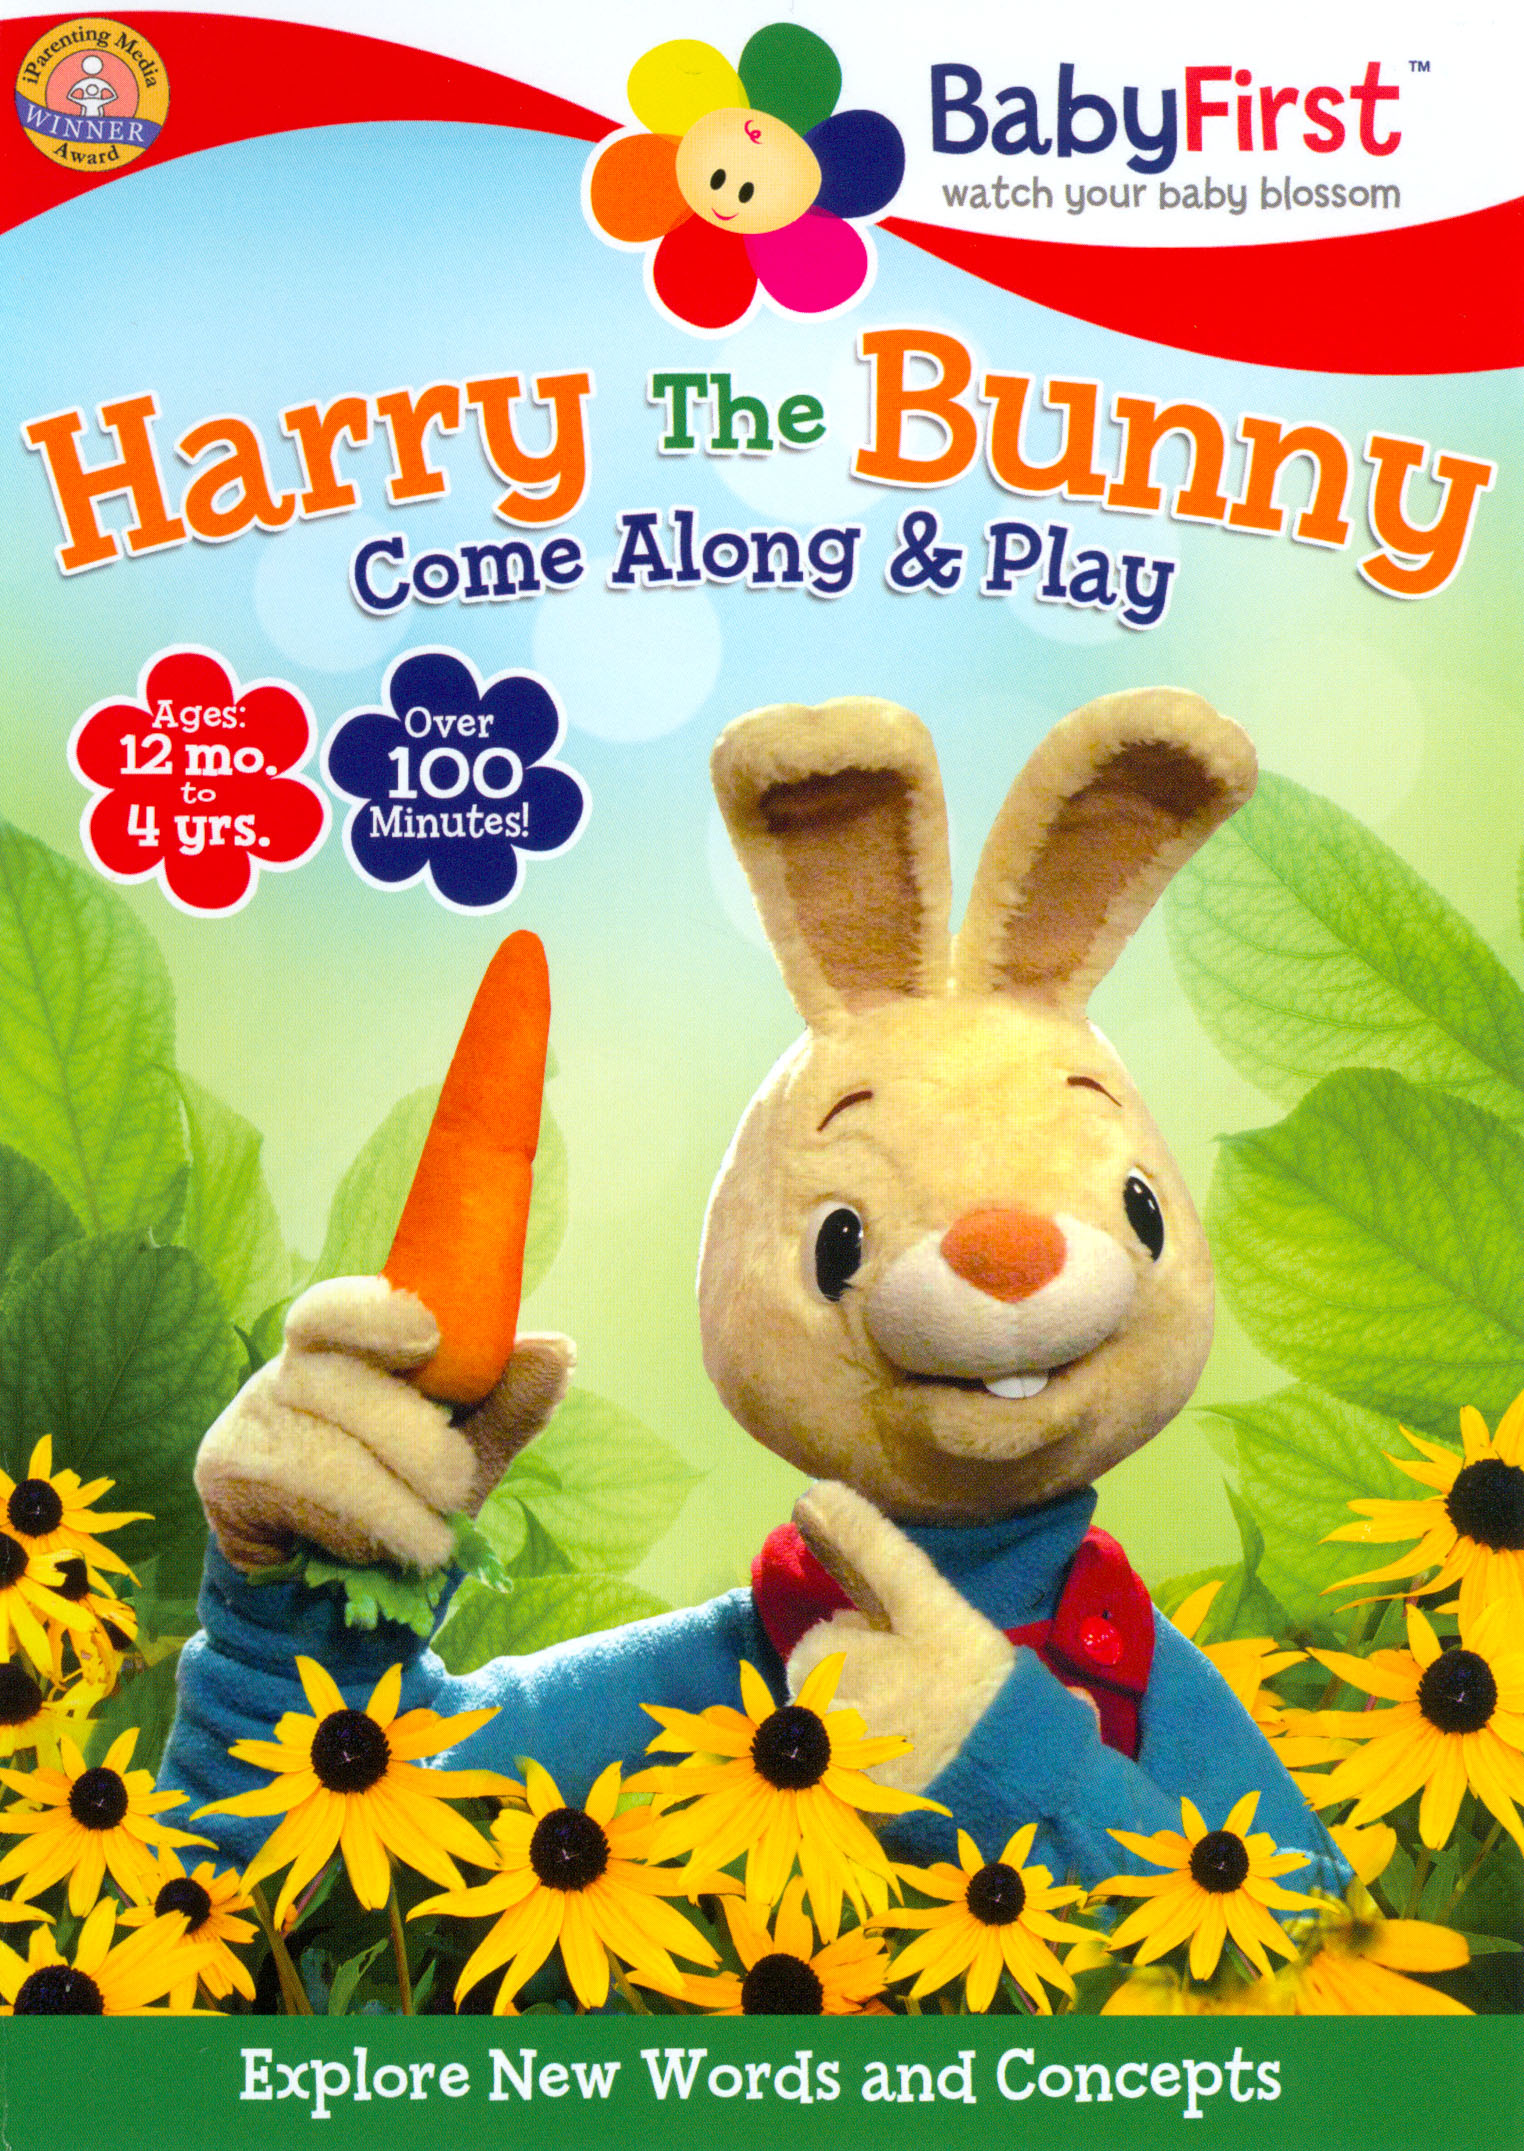 BabyFirst: Harry the Bunny - Come Along & Play